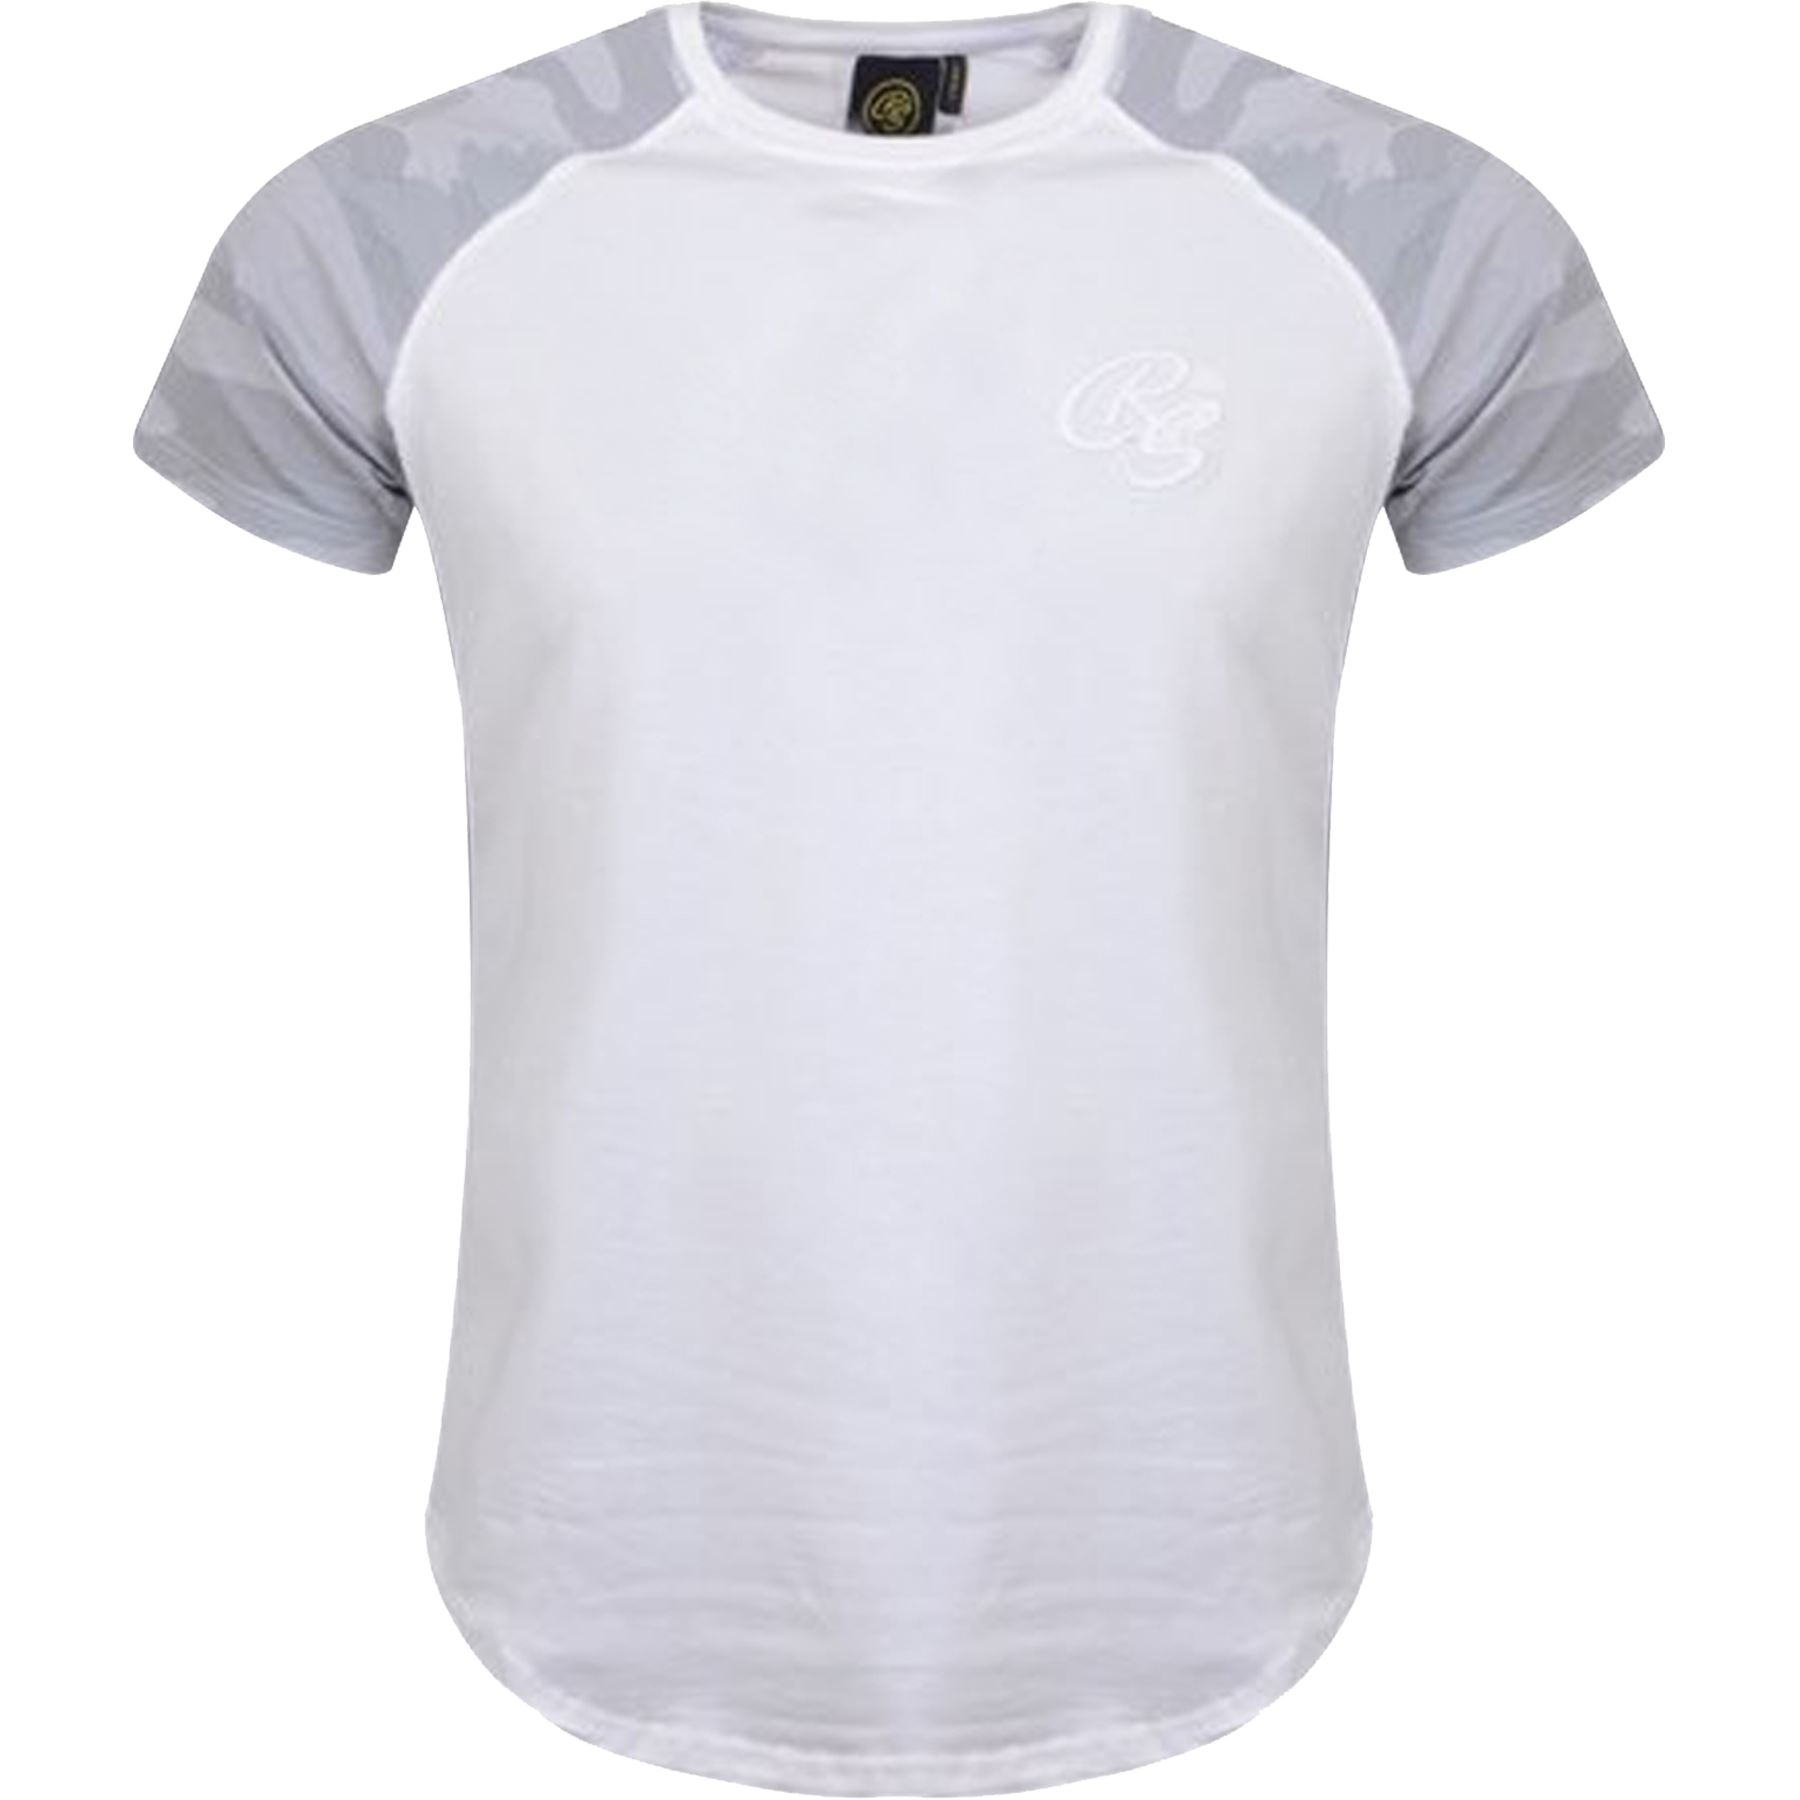 New-Mens-Crosshatch-T-Shirt-Summer-Contrast-Fade-2-Tone-Short-Sleeved-Top-Tee thumbnail 8